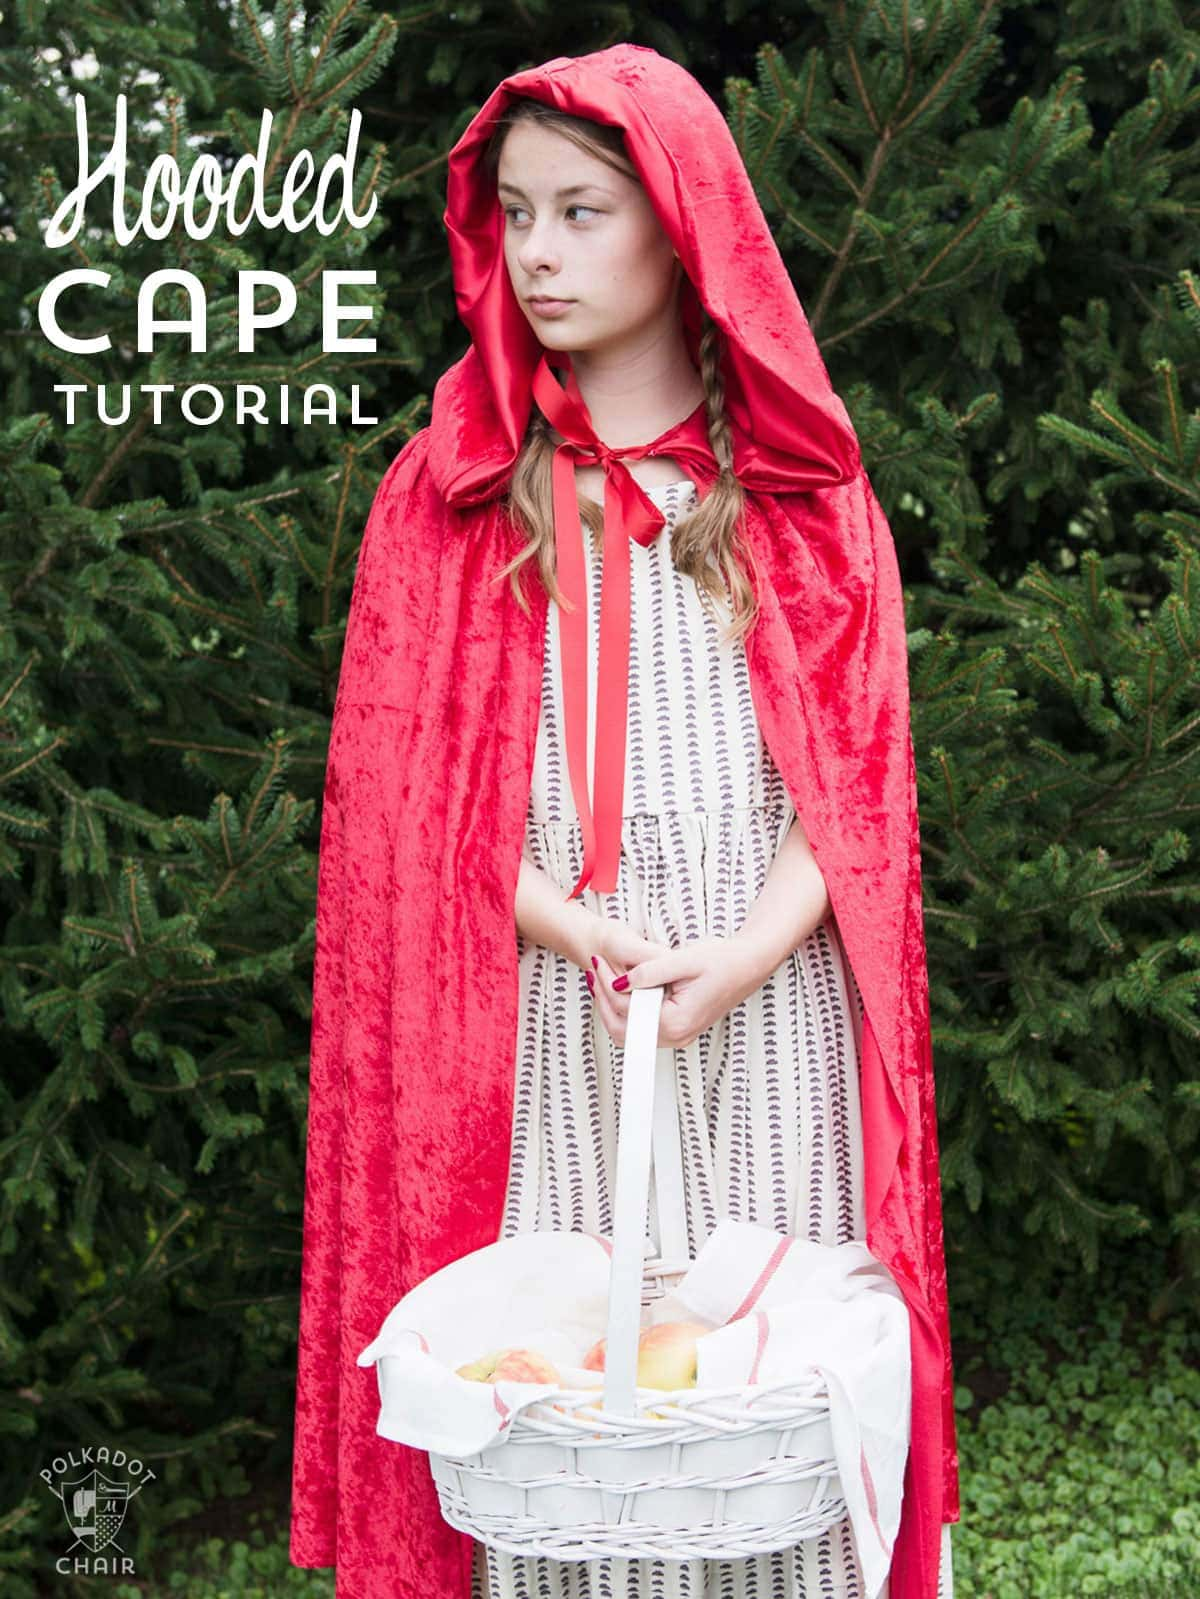 How to make a hooded cape for Halloween - tutorial teaches you how to resize it for kids or adults